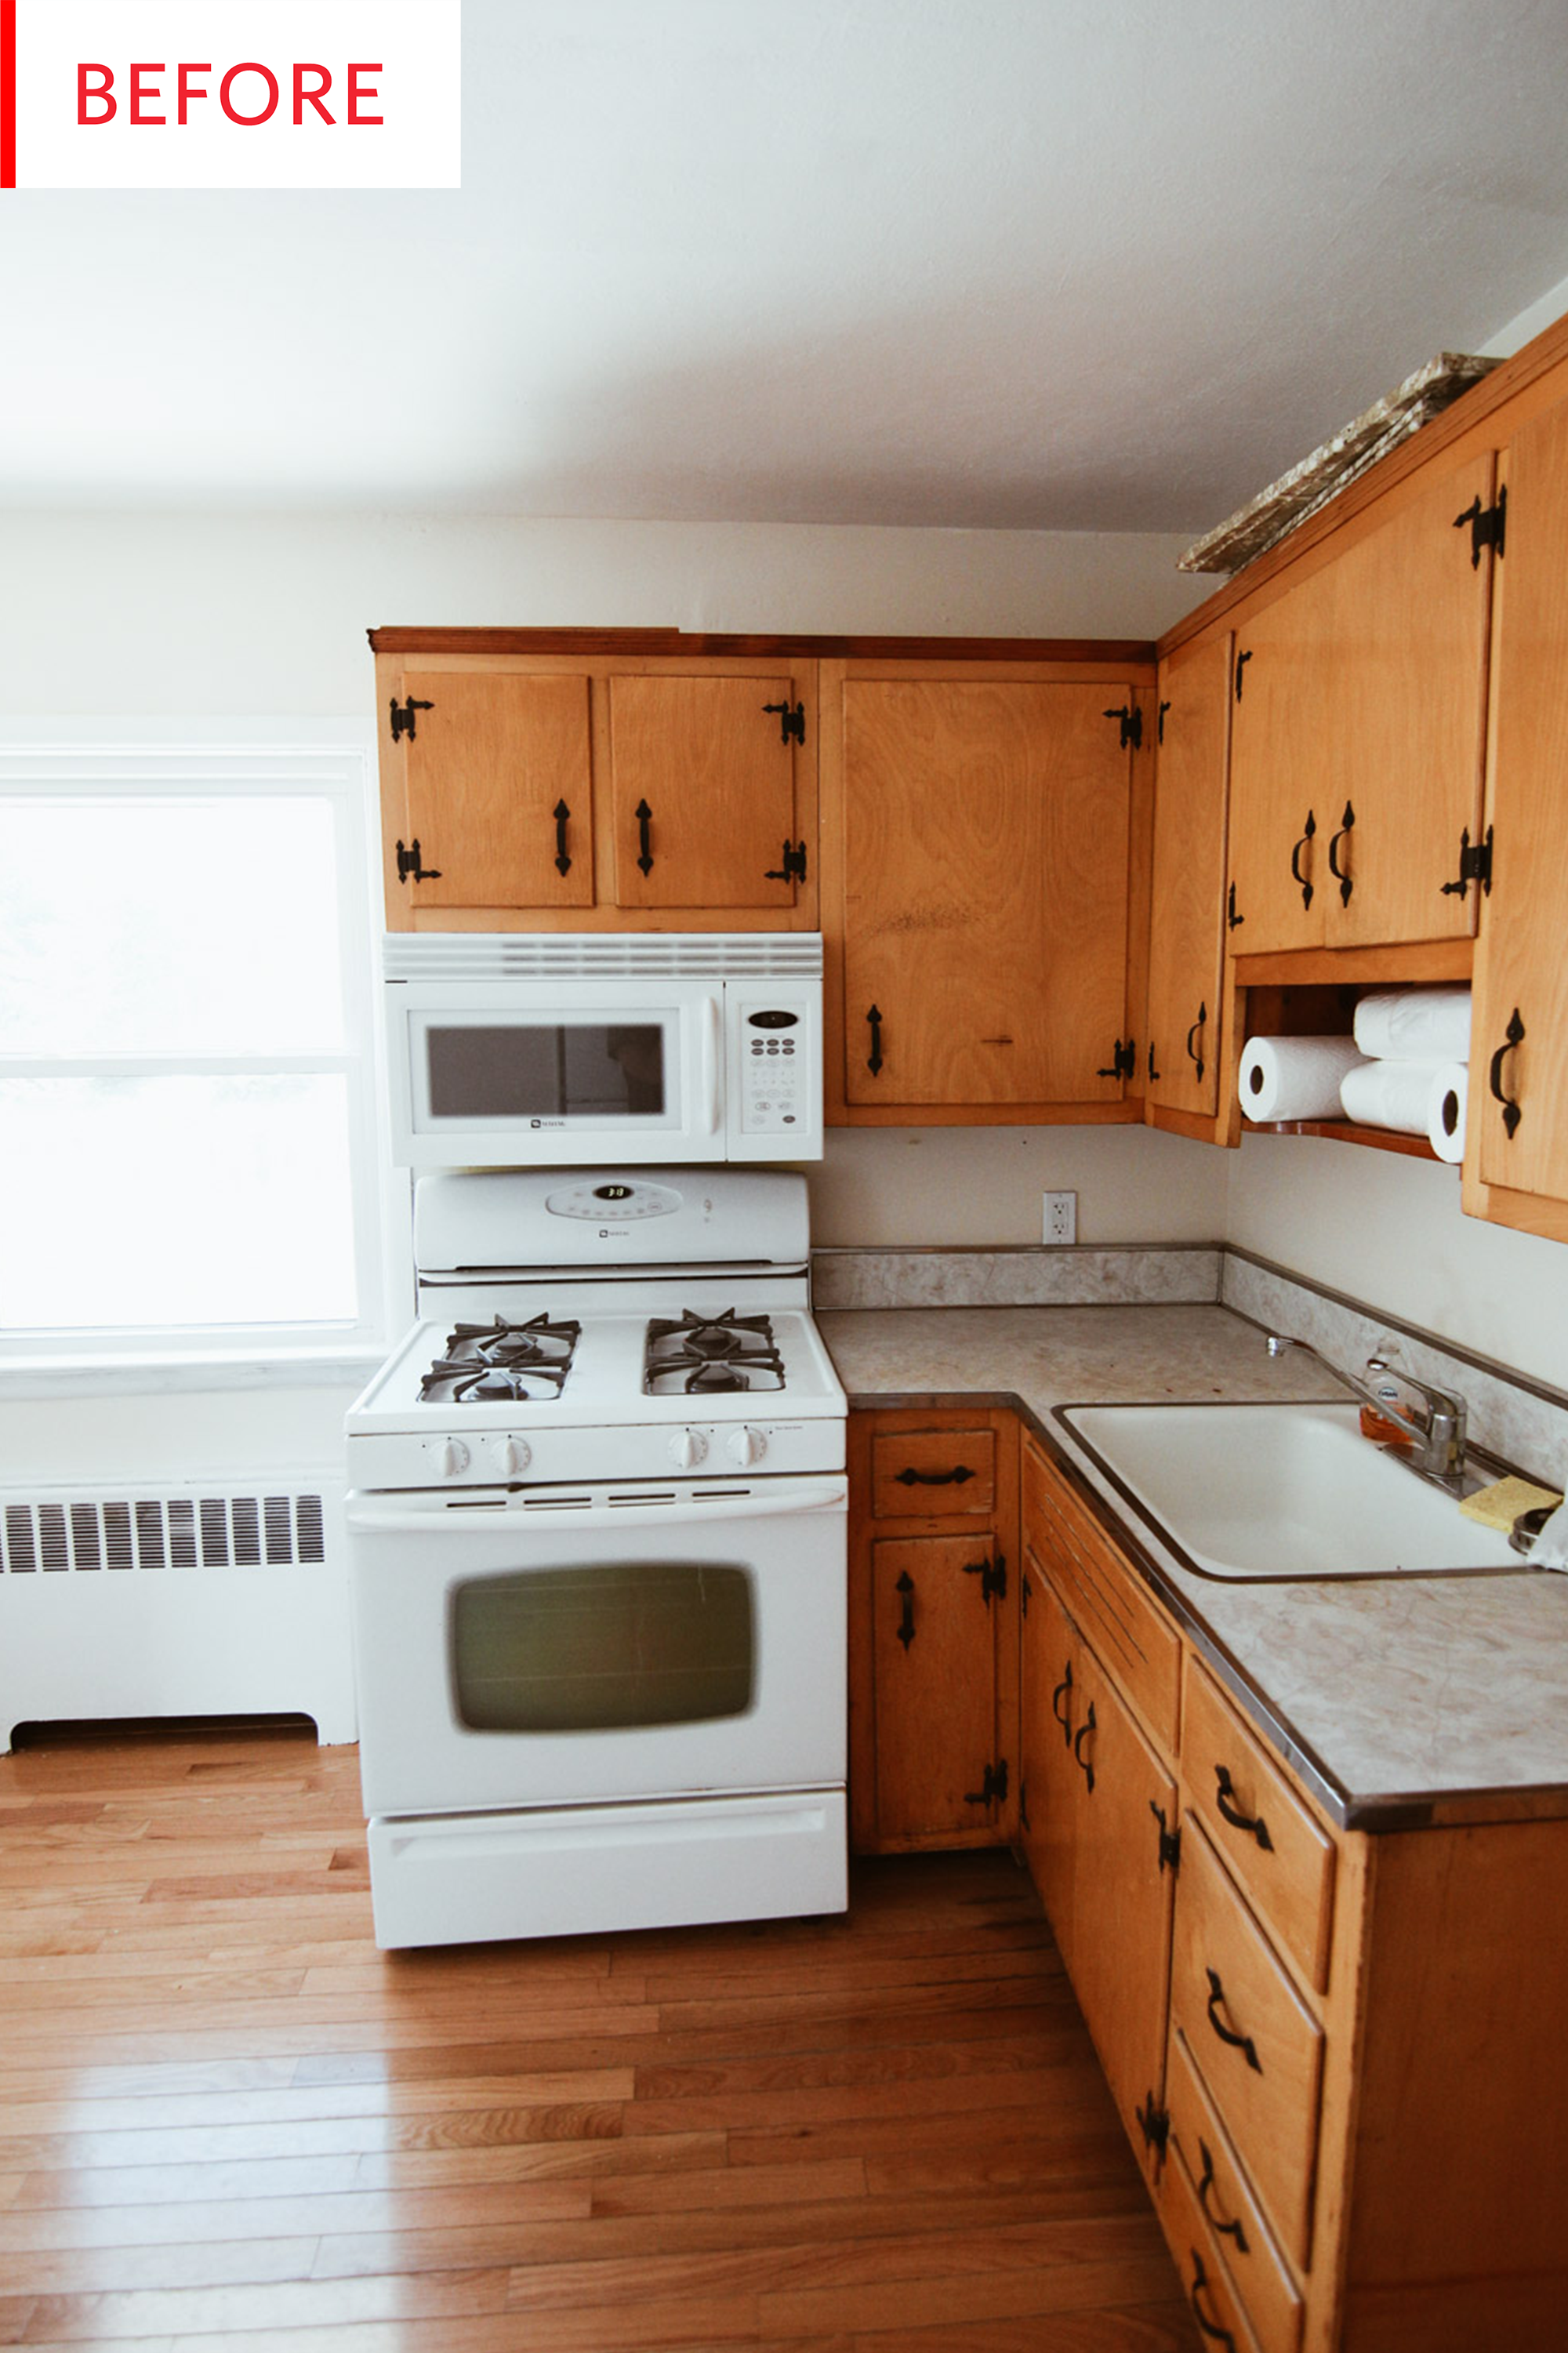 Before And After The Secret To Successfully Painting Old Kitchen Cabinets Shabby Chic Kitchen Cabinets Budget Kitchen Remodel Kitchen Cabinets Makeover